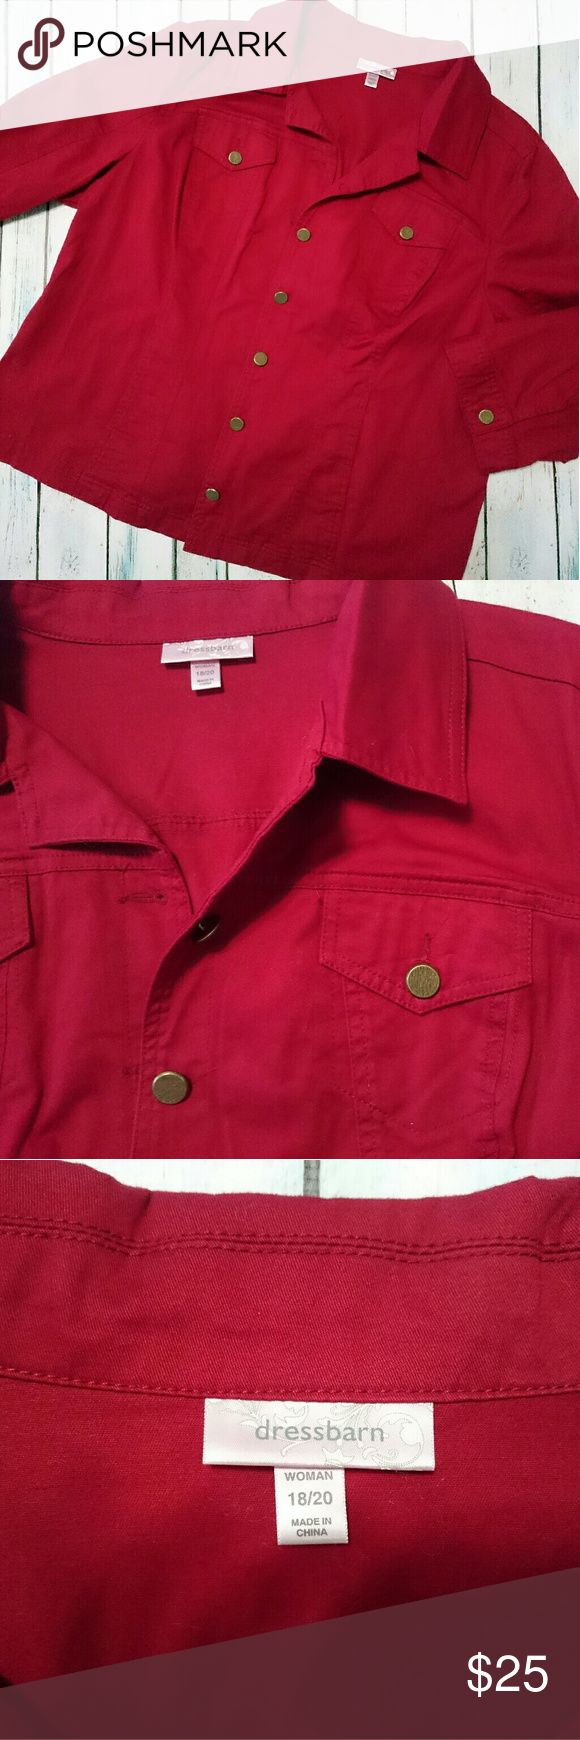 Dress Barn Jacket Women's plus size deep red jacket. Color is a bit darker than the pictures.  Long sleeve, button up. Two front chest pockets and two side pockets.  98% cotton 2% spandex. Slight stretch. Dress Barn Jackets & Coats